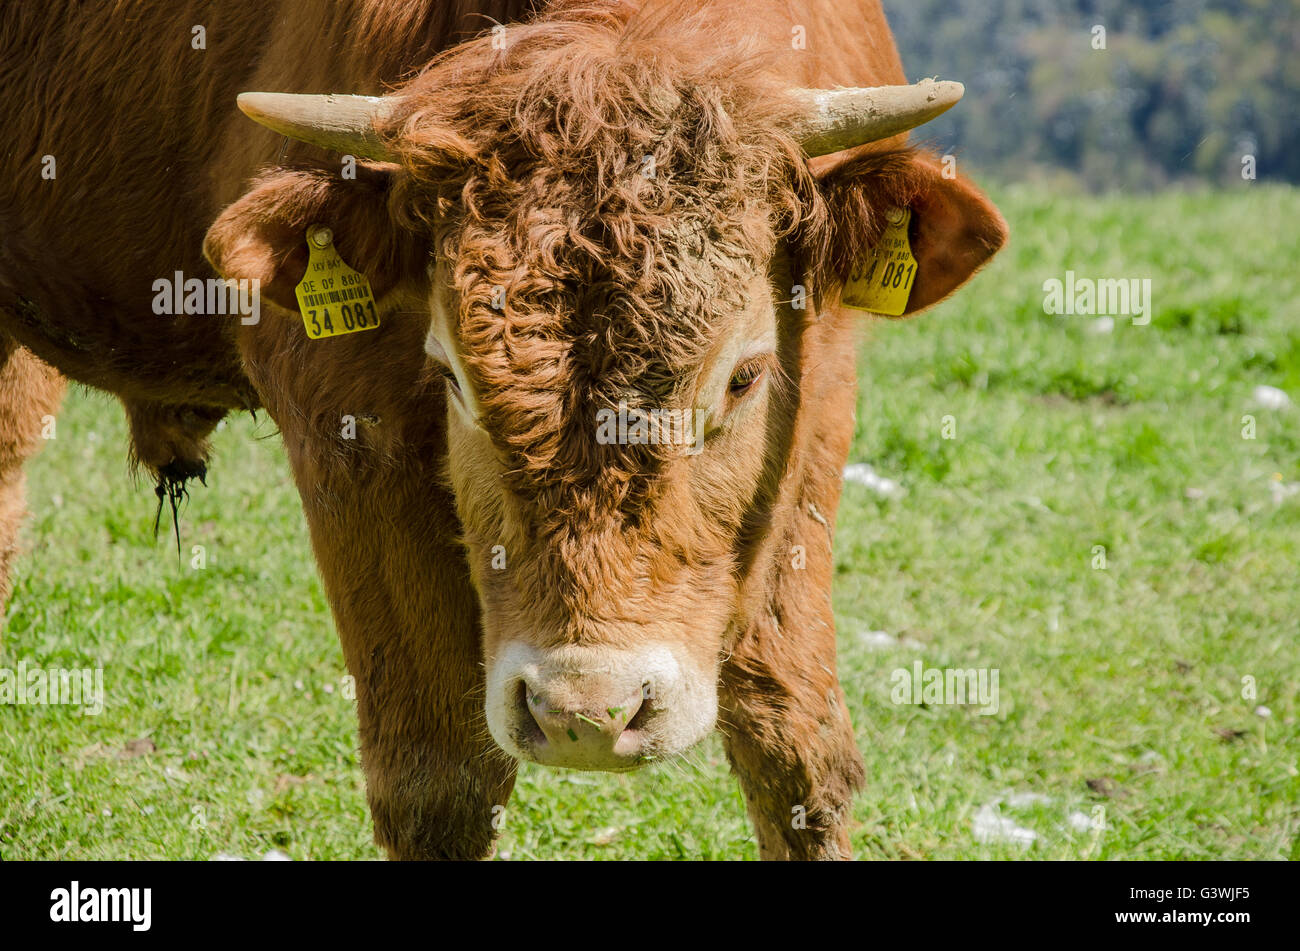 young bull in the mountains in April with snow on the grass - Stock Image